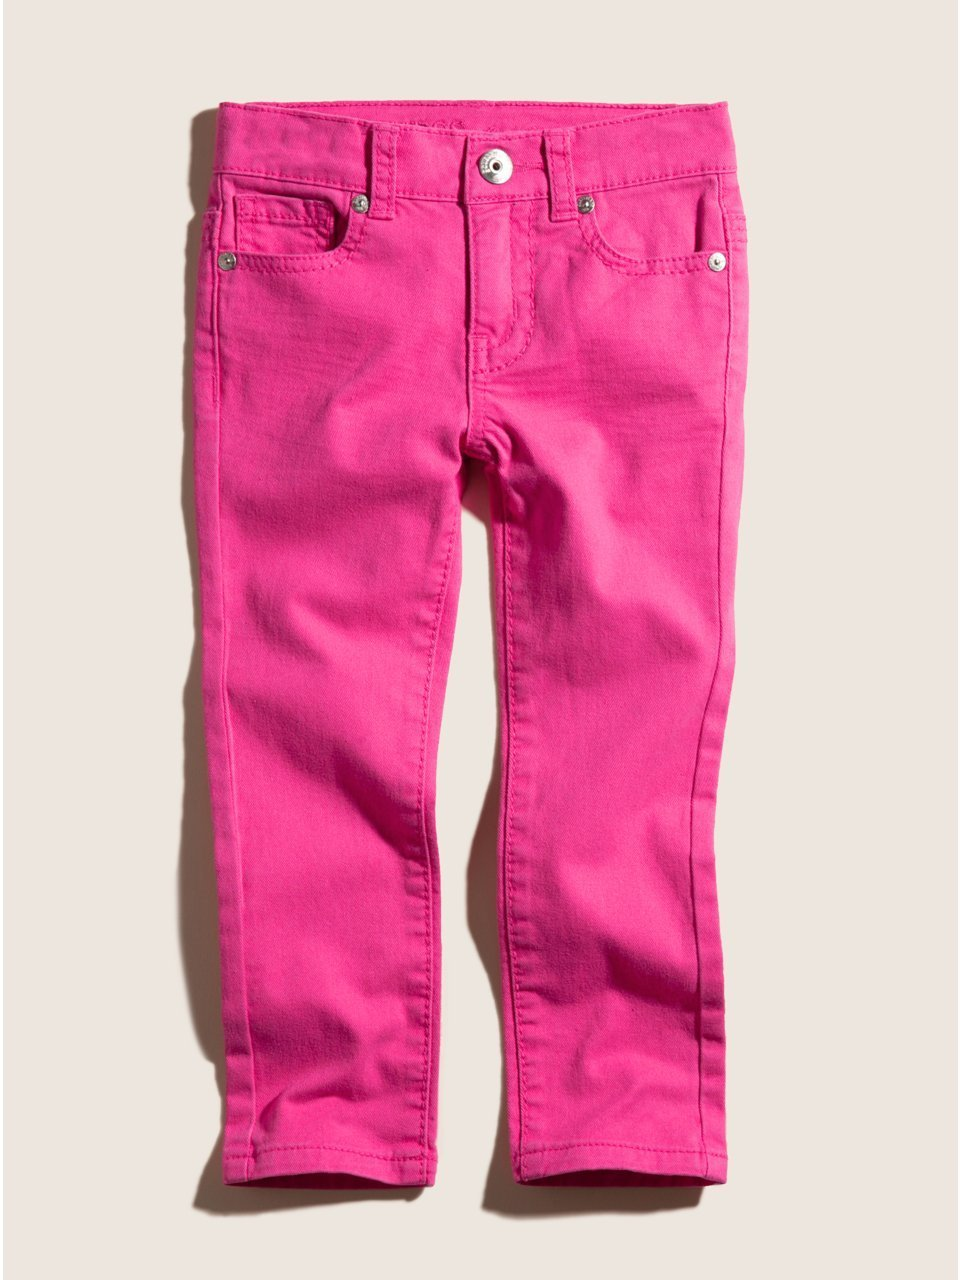 Hot Pink Jeans For Women